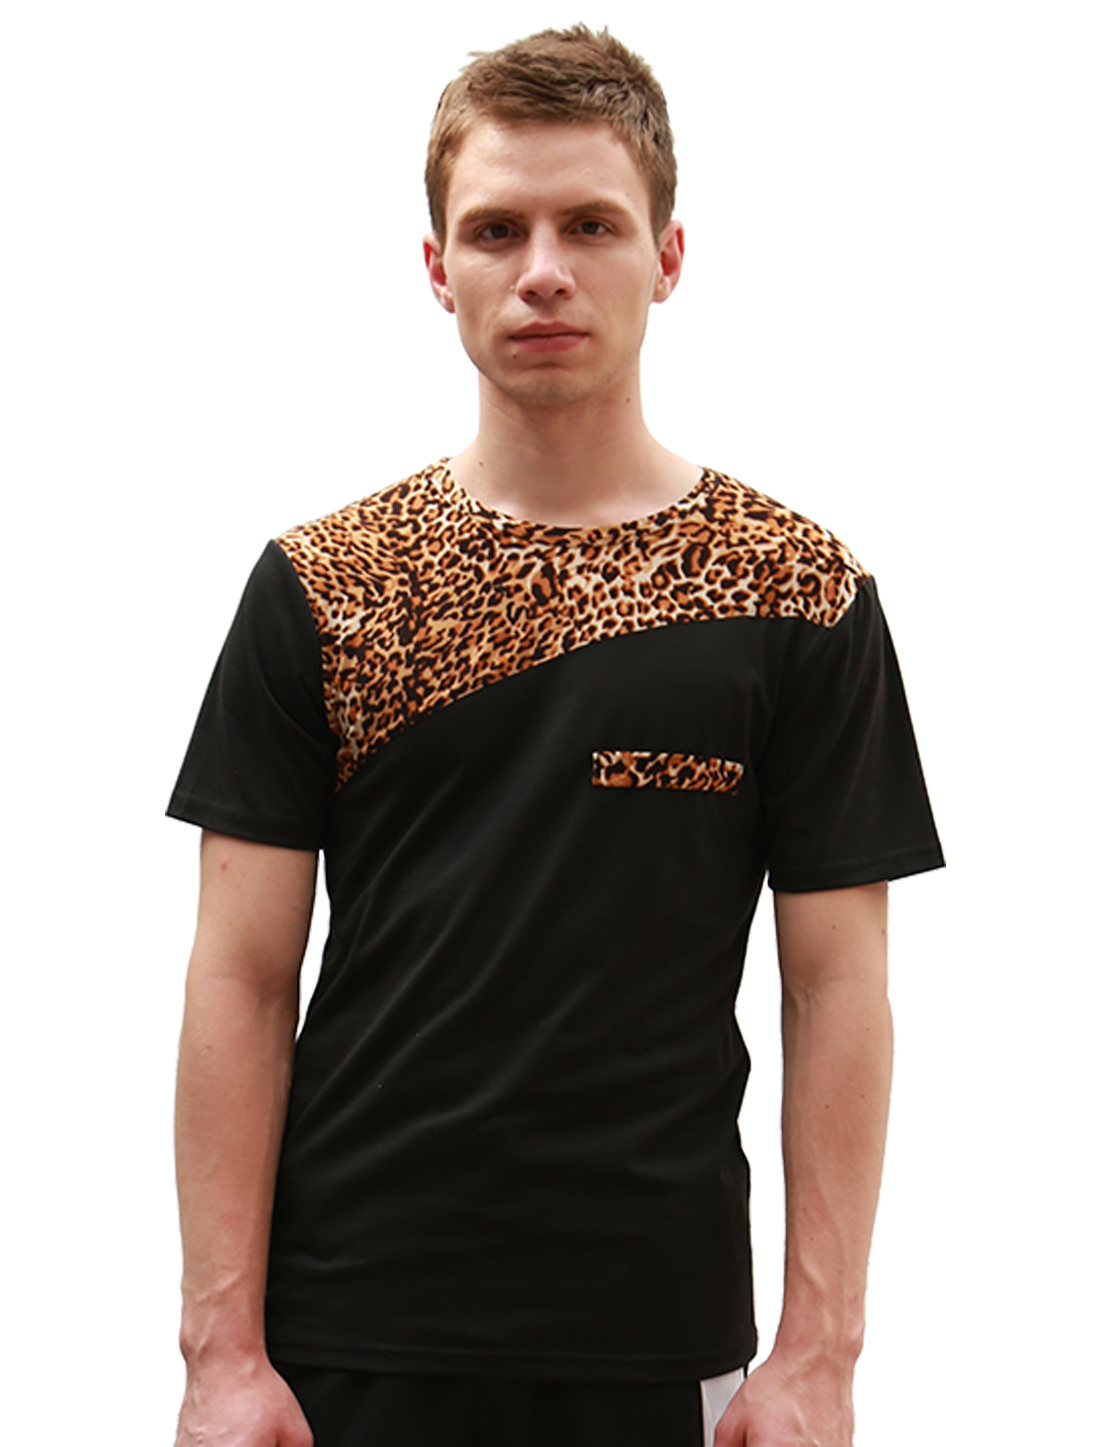 Men Black V-neck Leopard Prints Detail Stretch Simple Tee Shirt L